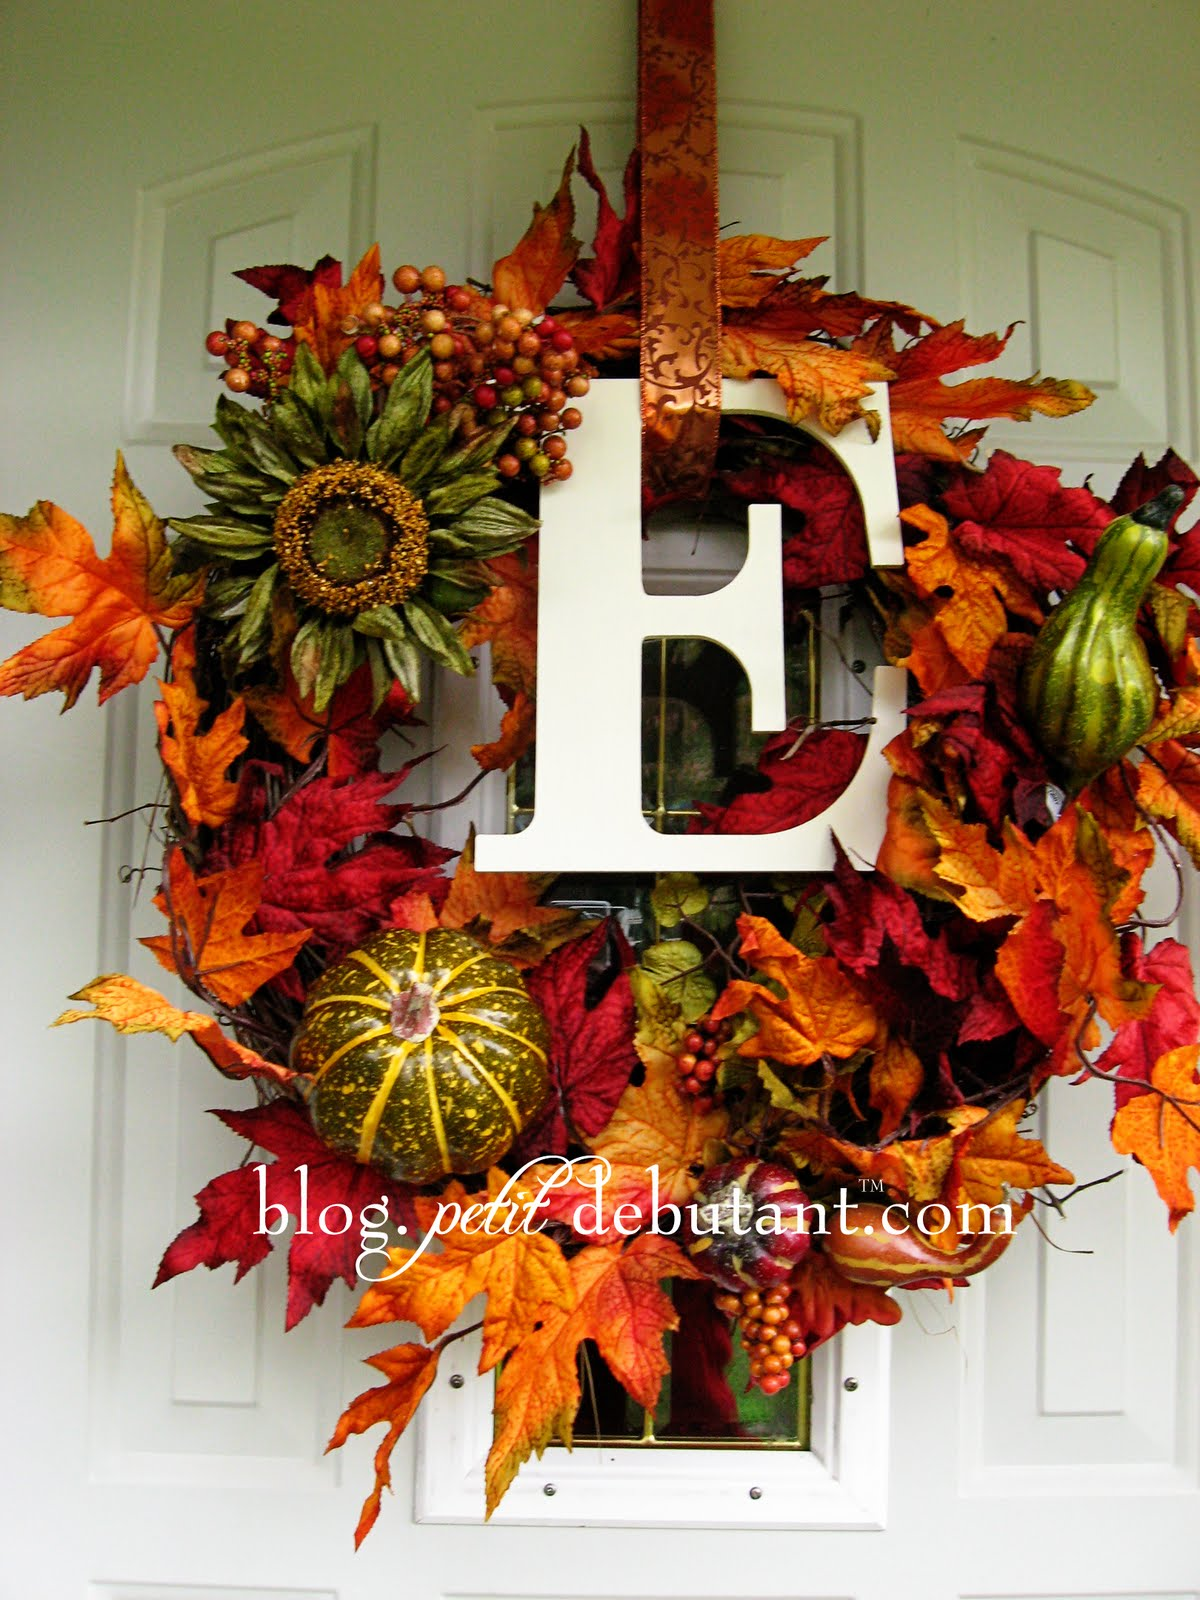 Diy fall wreaths ideas classy clutter Fall autumn door wreaths